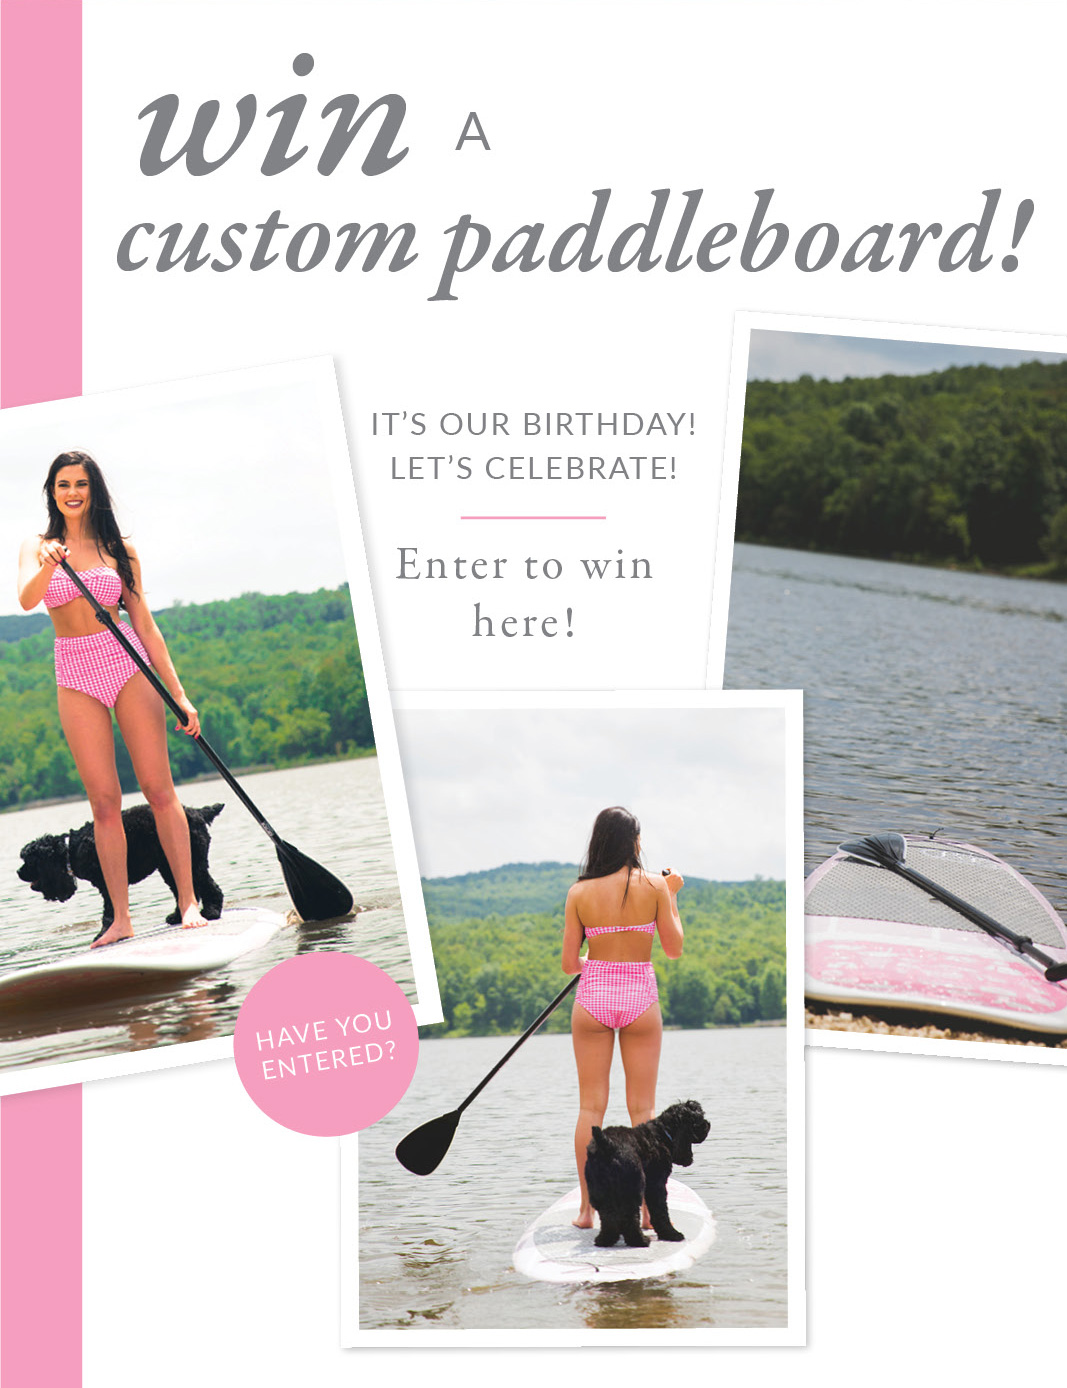 WIN A CUSTOM PADDLEBOARD! - IT'S OUR BIRTHDAY! LET'S CELEBRATE! - ENTER TO WIN HERE! - HAVE YOU ENTERED?